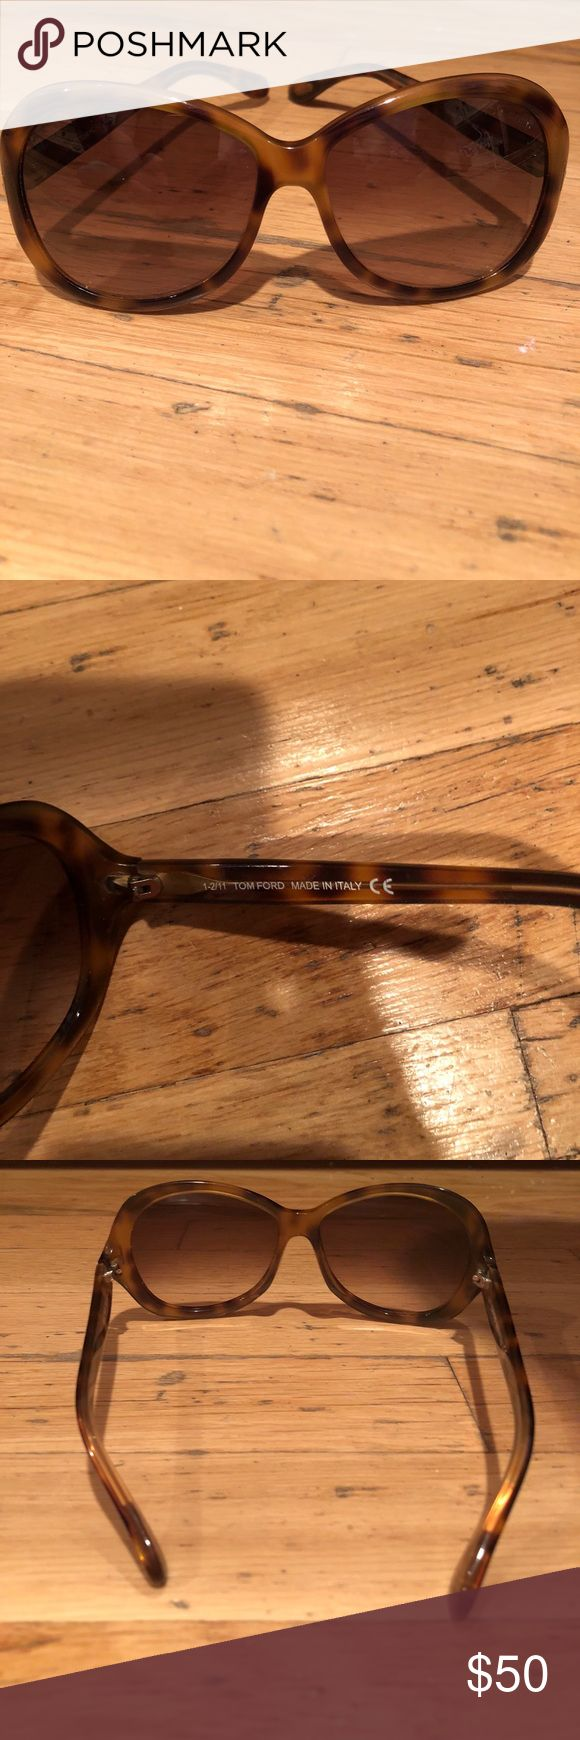 Tom Ford women's sunglasses TOM Ford genuine women's sunglasses Tortoise shell Used/ lenses are scratched   Great deal! Tom Ford Accessories Sunglasses